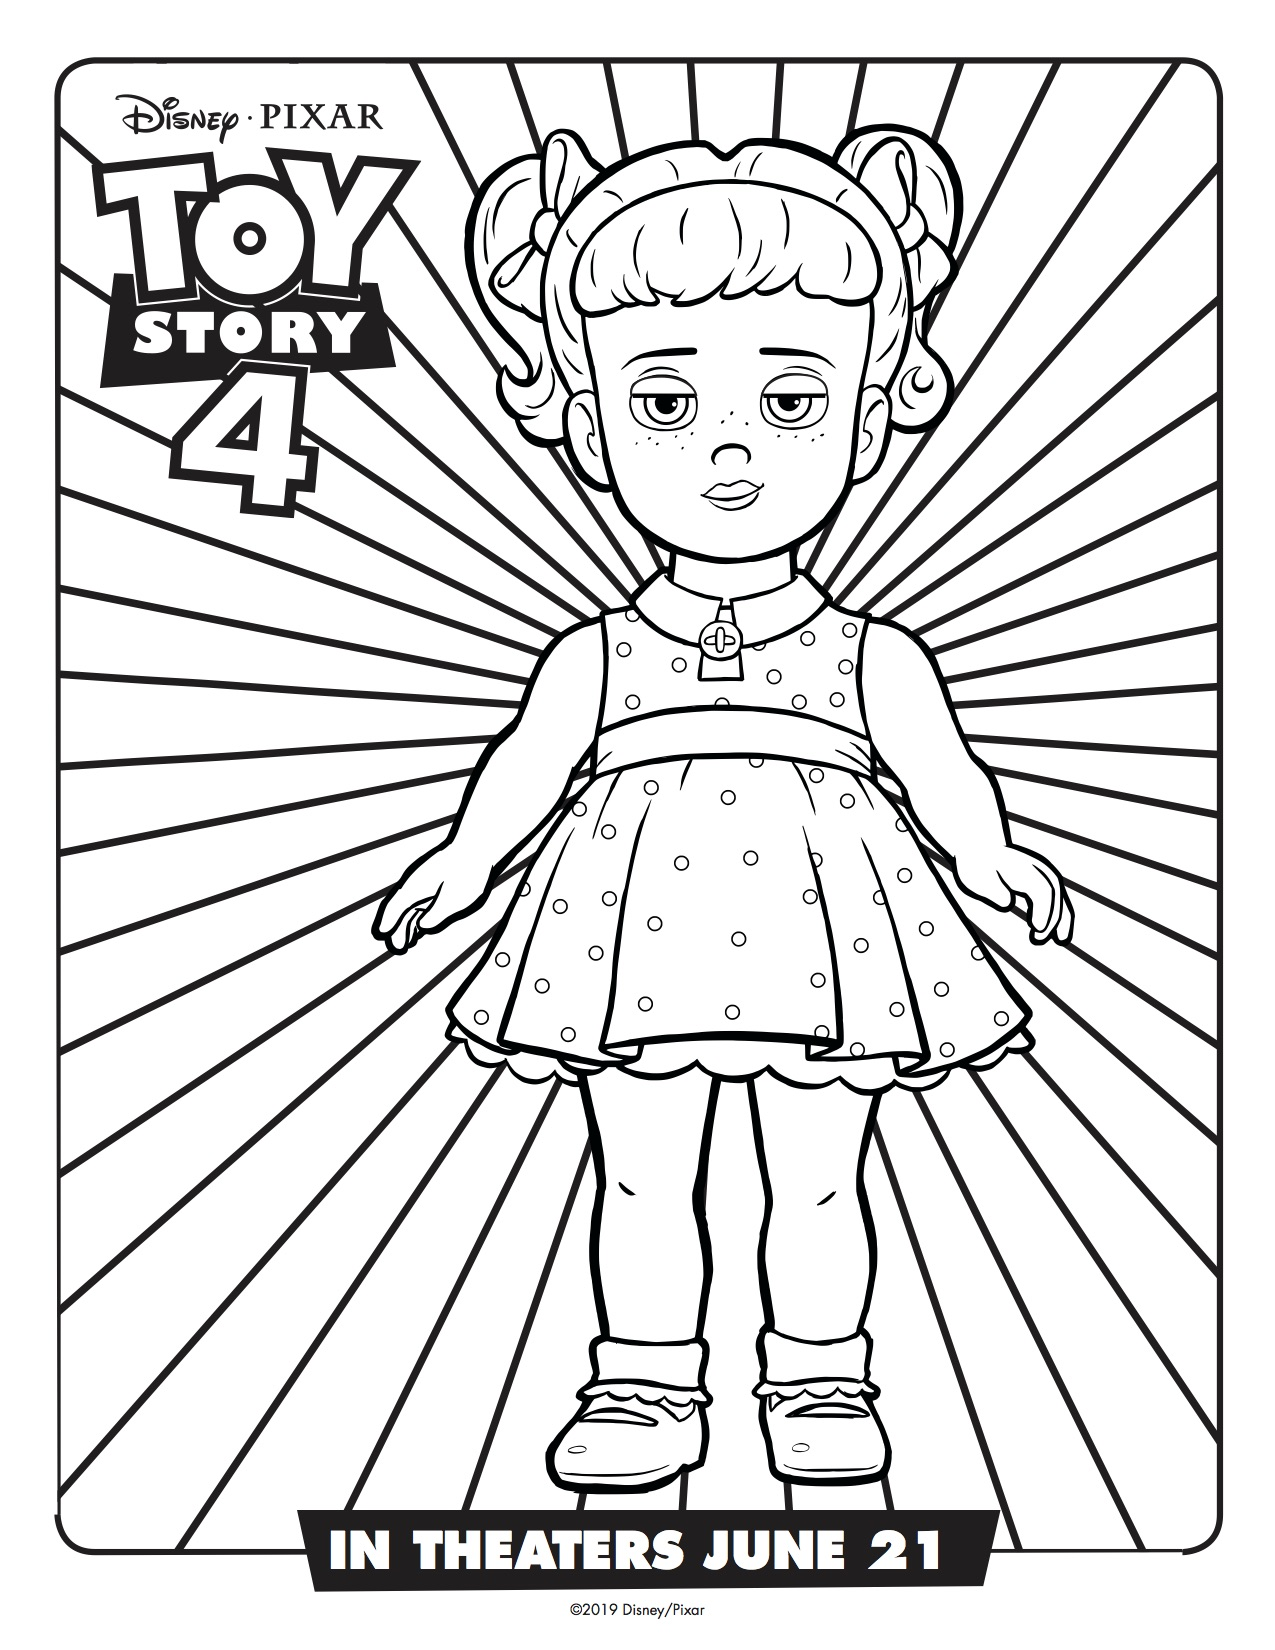 Toy-Story-4-Gabby-Gabby-Printable-Coloring-Page Simply